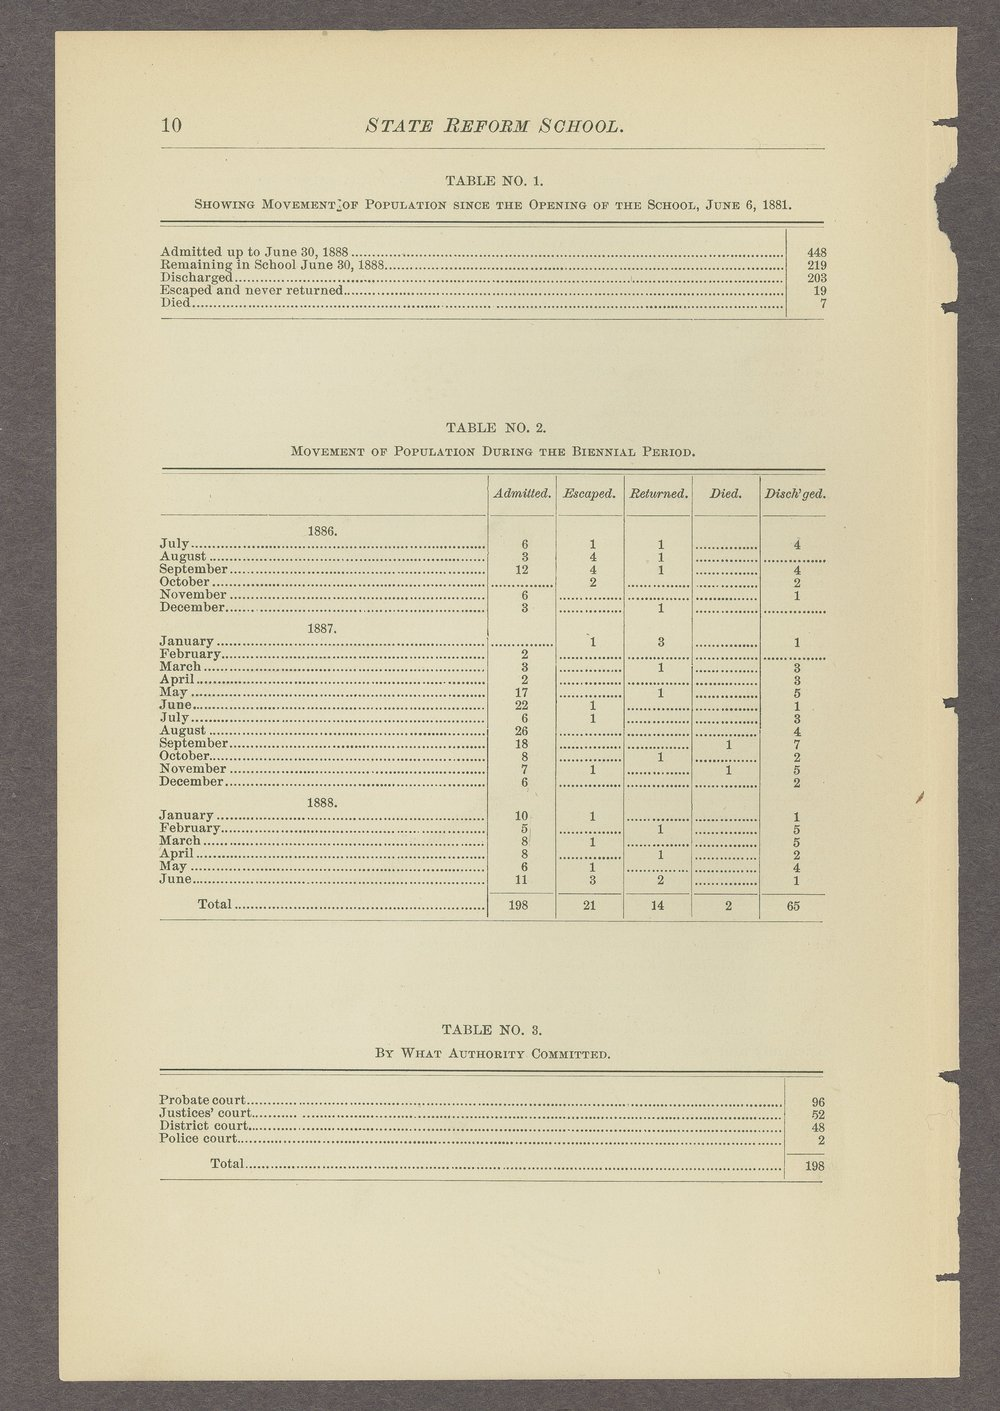 Biennial report of the State Reform School, 1888 - 10